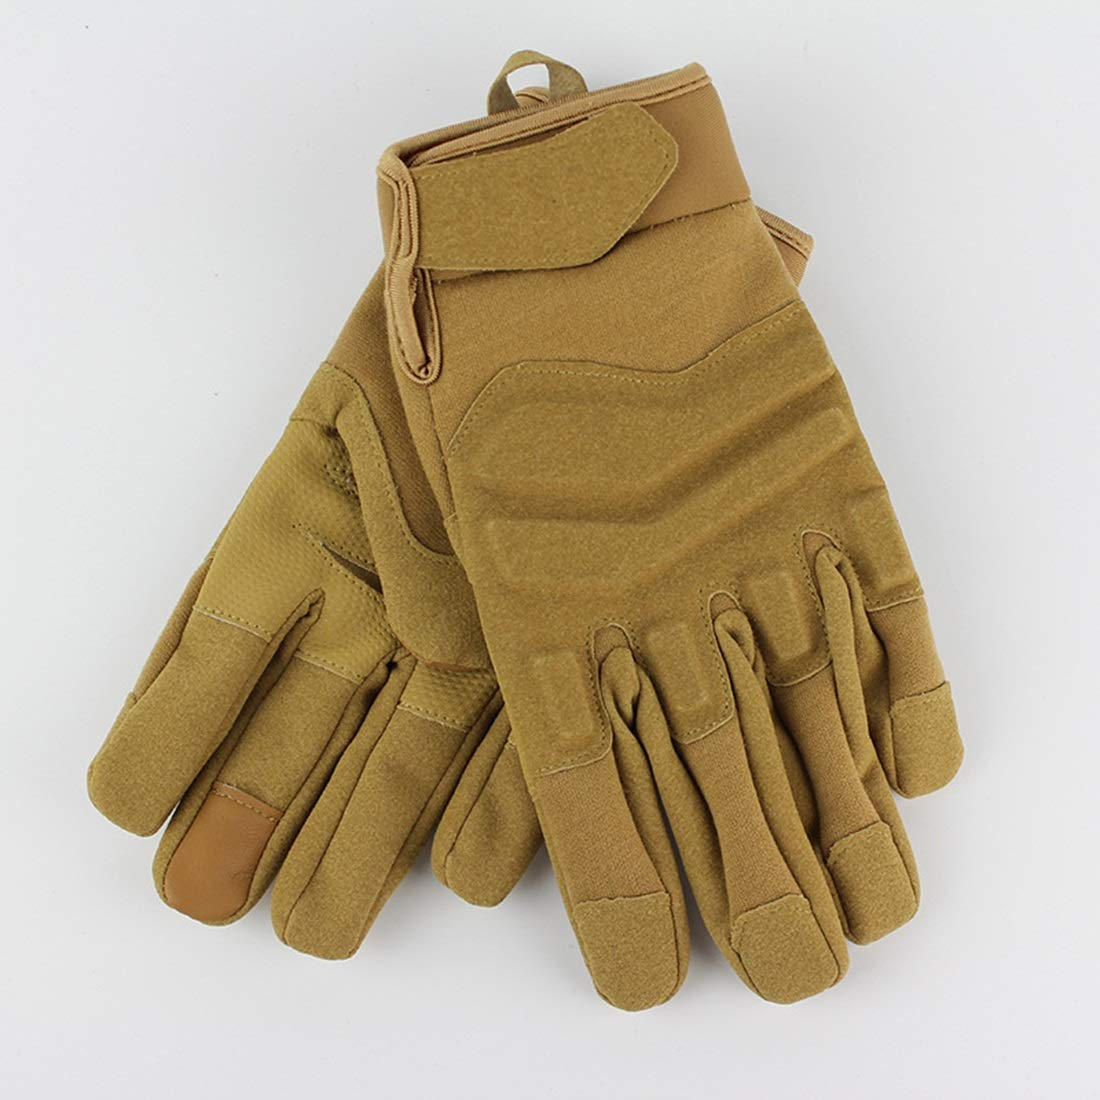 Carriemeow Touch Screen Style Full Tactical Gloves Outdoor Sports Tactical Gloves Bicycle Motorcycle Riding Gloves